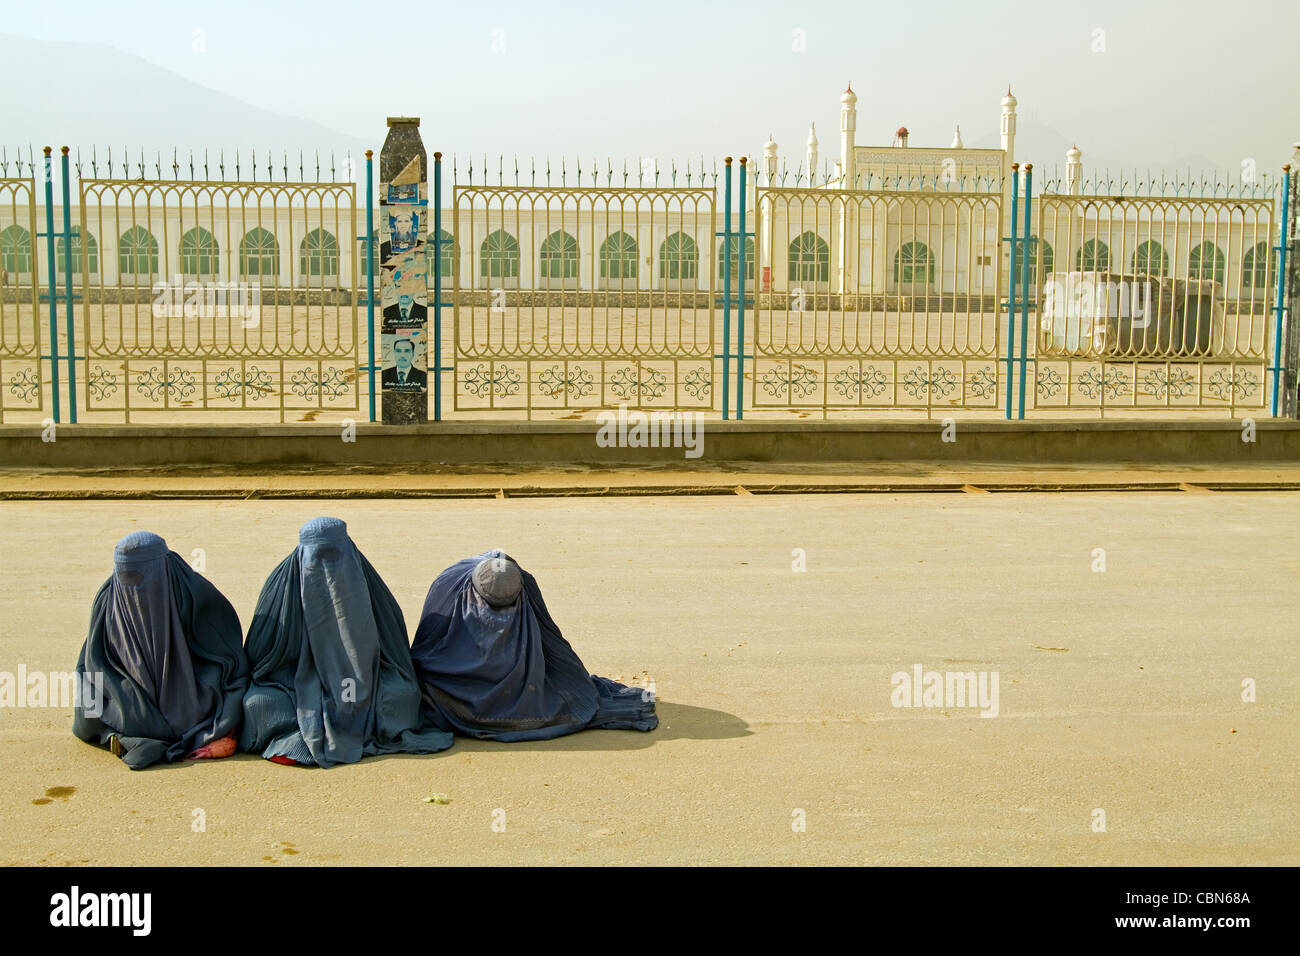 Afghan women in burka sitting on the ground Kabul Afghanistan - Stock Image